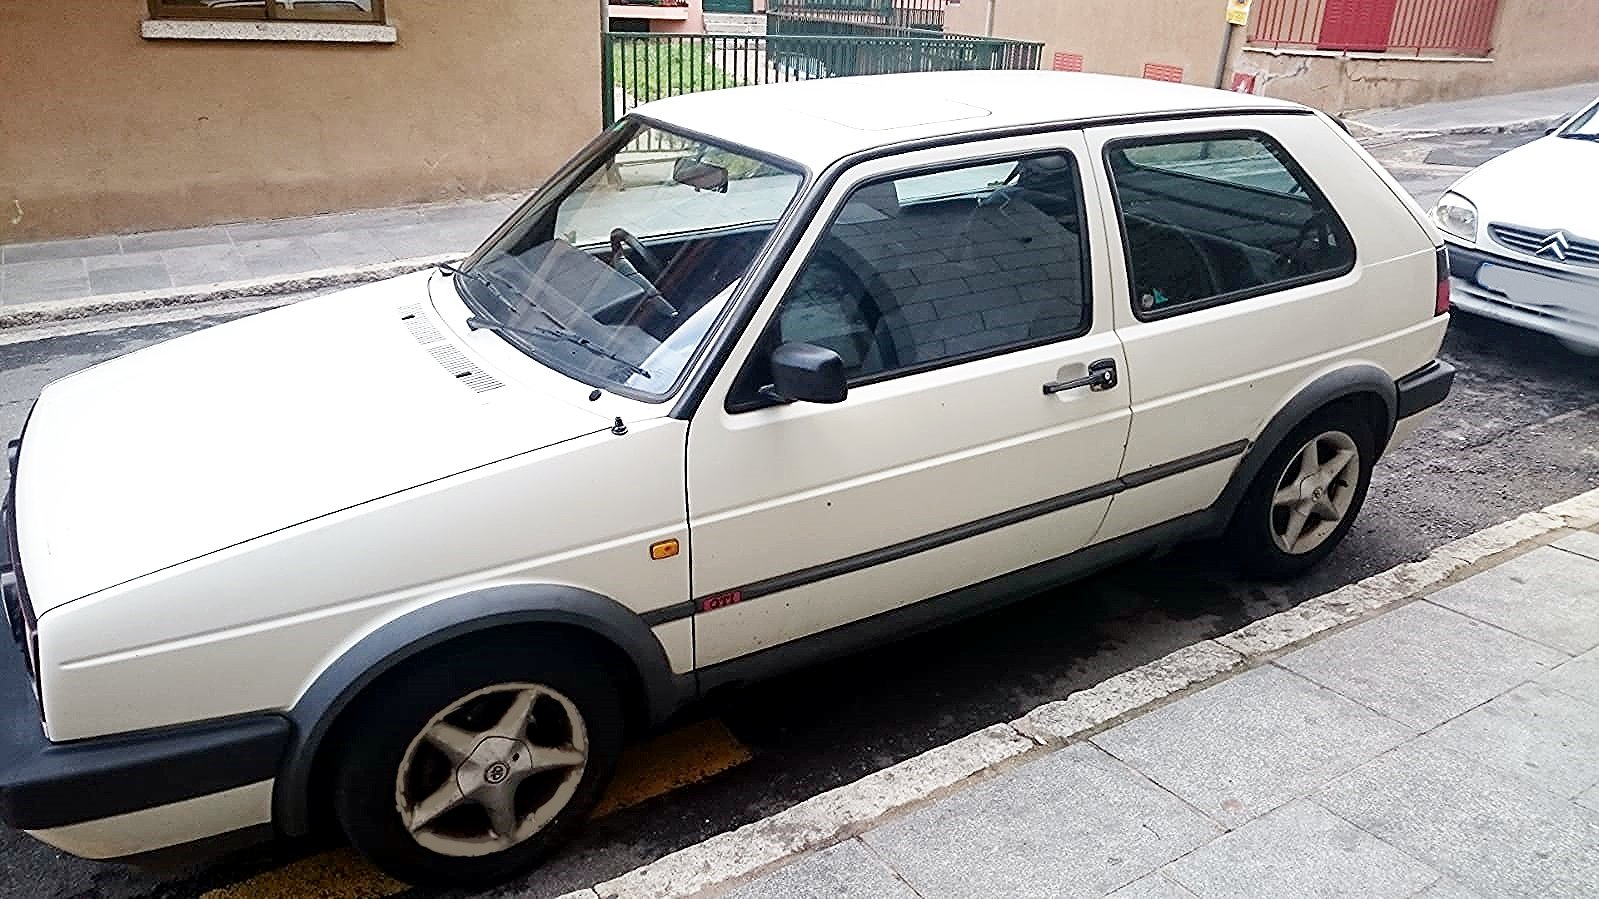 1990 VW GOLF GTI 8V RHD BUT LIVED IN SPAIN PAST 16 YRS For Sale (picture 1 of 6)